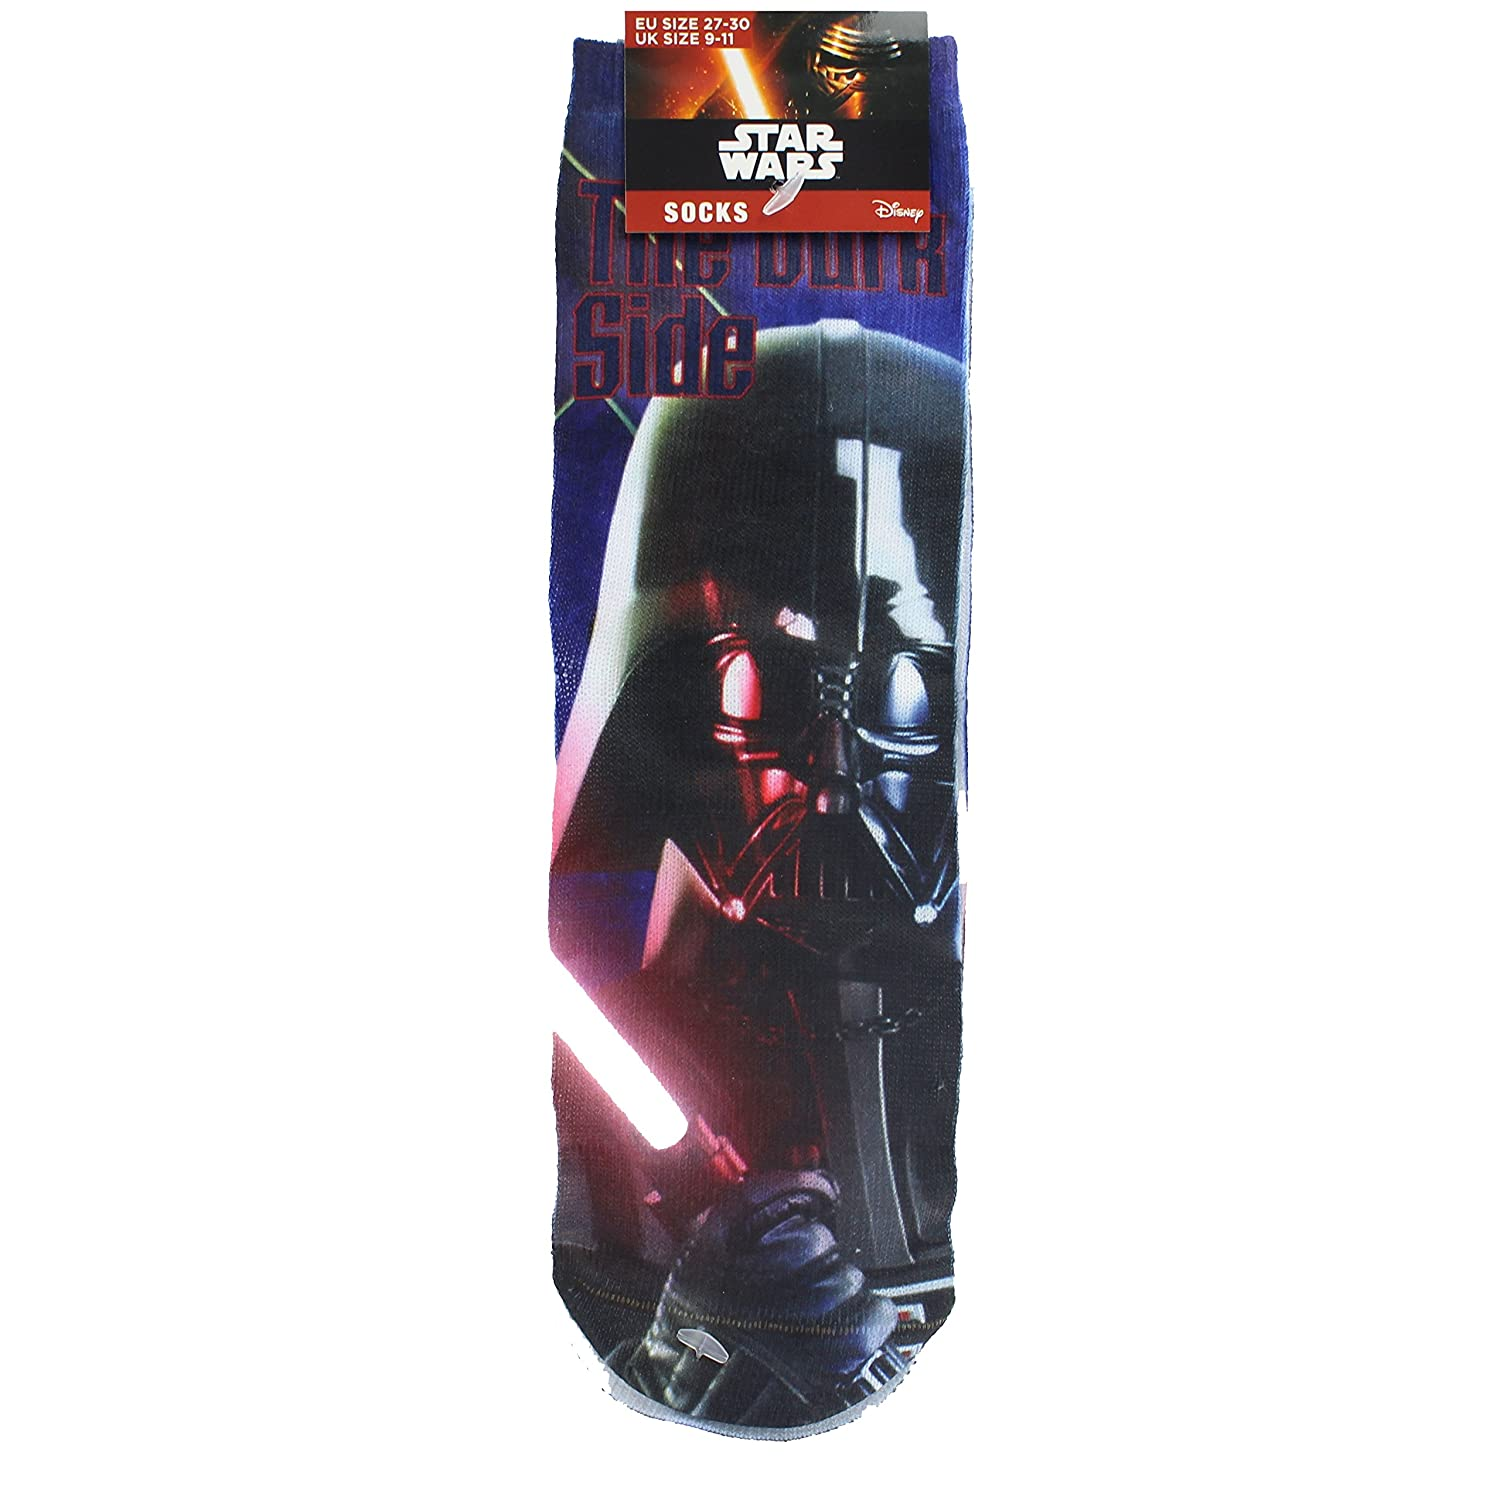 Disney Star Wars Darth Vader Dark Side Printed Children's Socks - UK Size 9-11